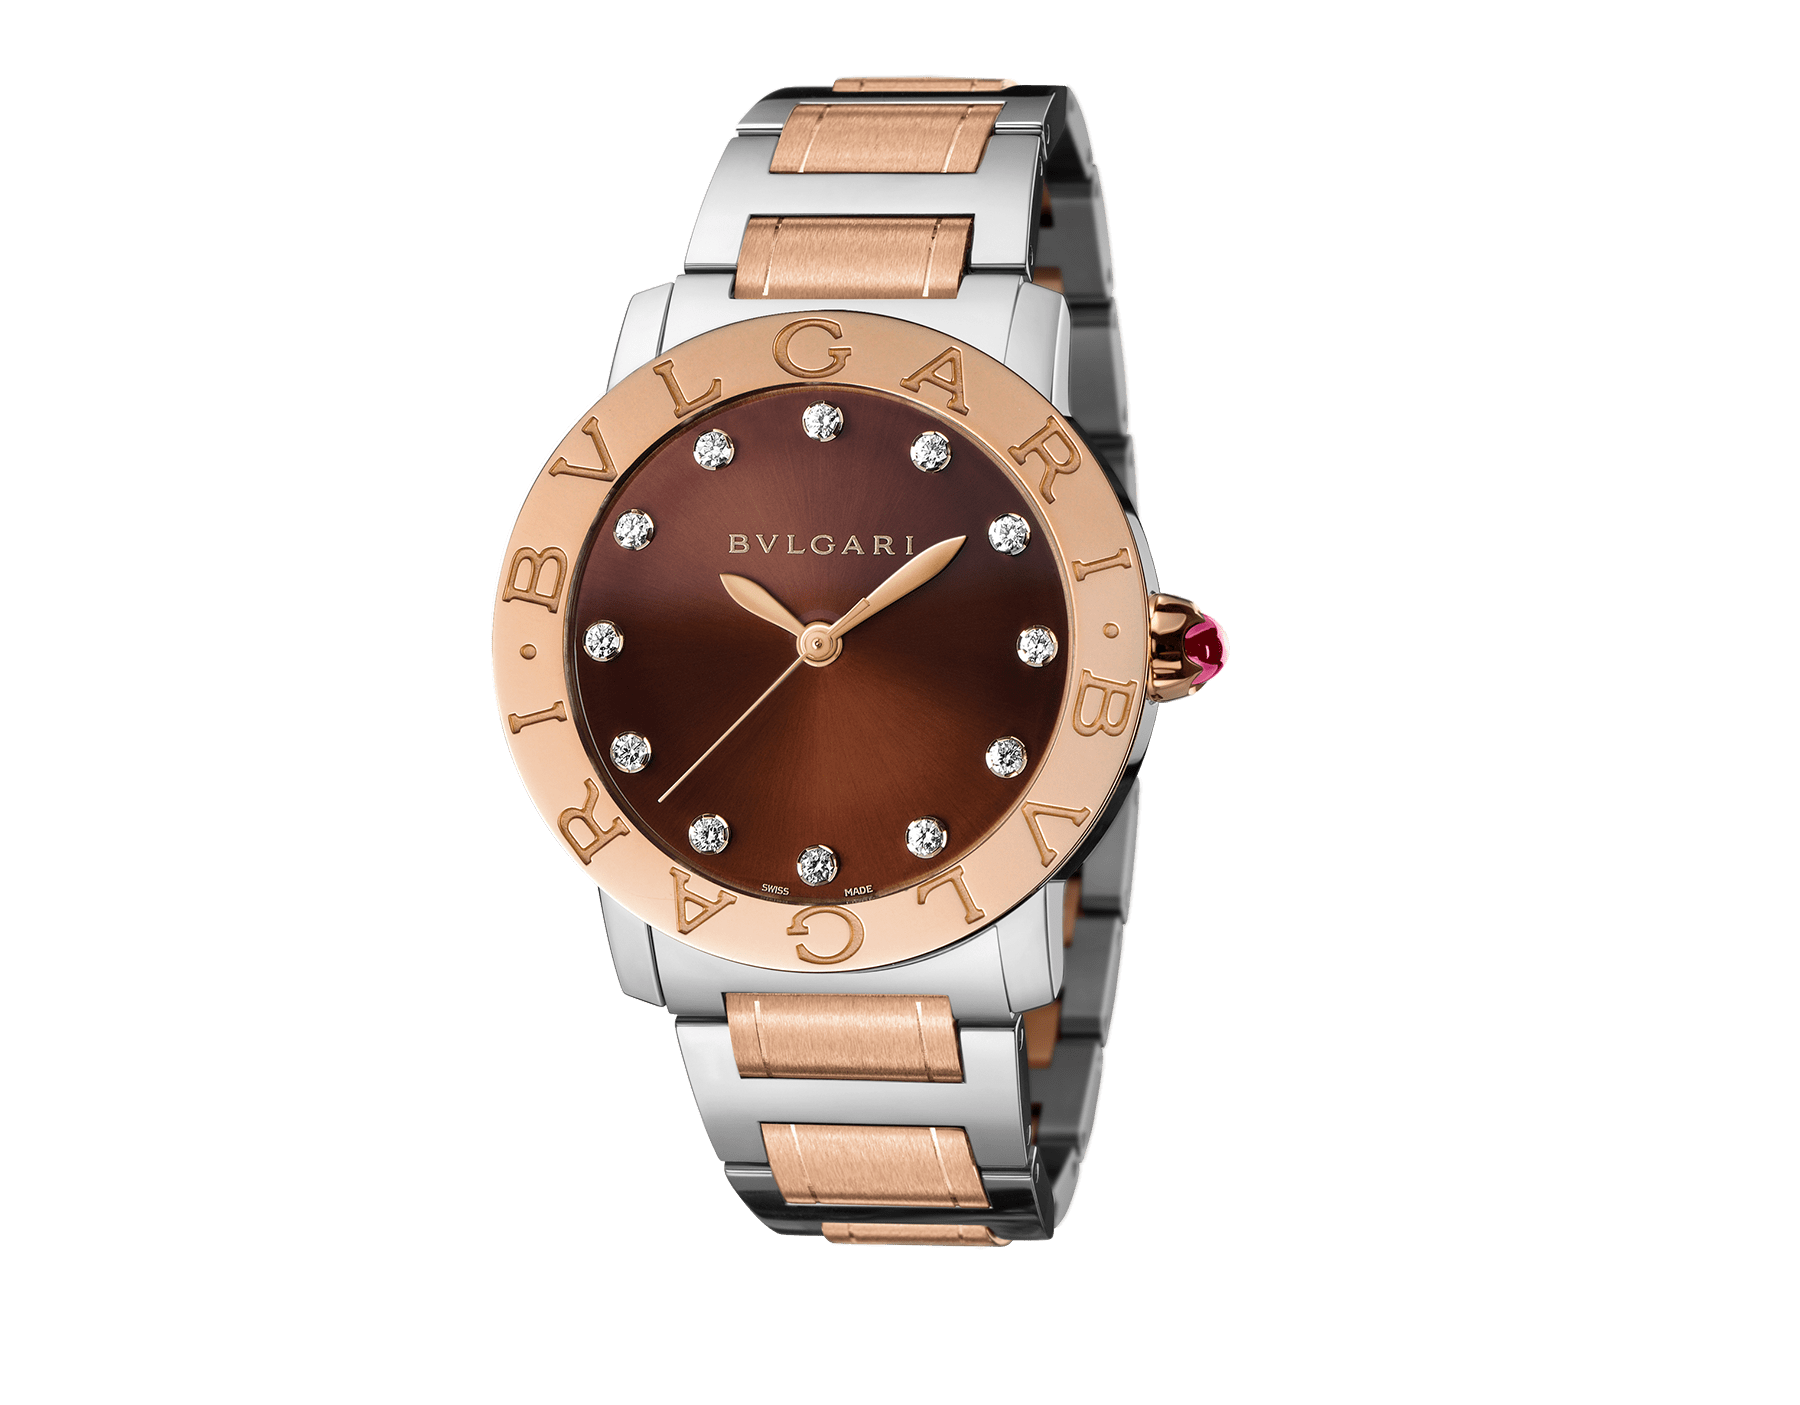 BVLGARI BVLGARI watch in stainless steel and 18 kt rose gold case and bracelet, with brown soleil lacquered dial and diamond indexes. Large model 102159 image 1